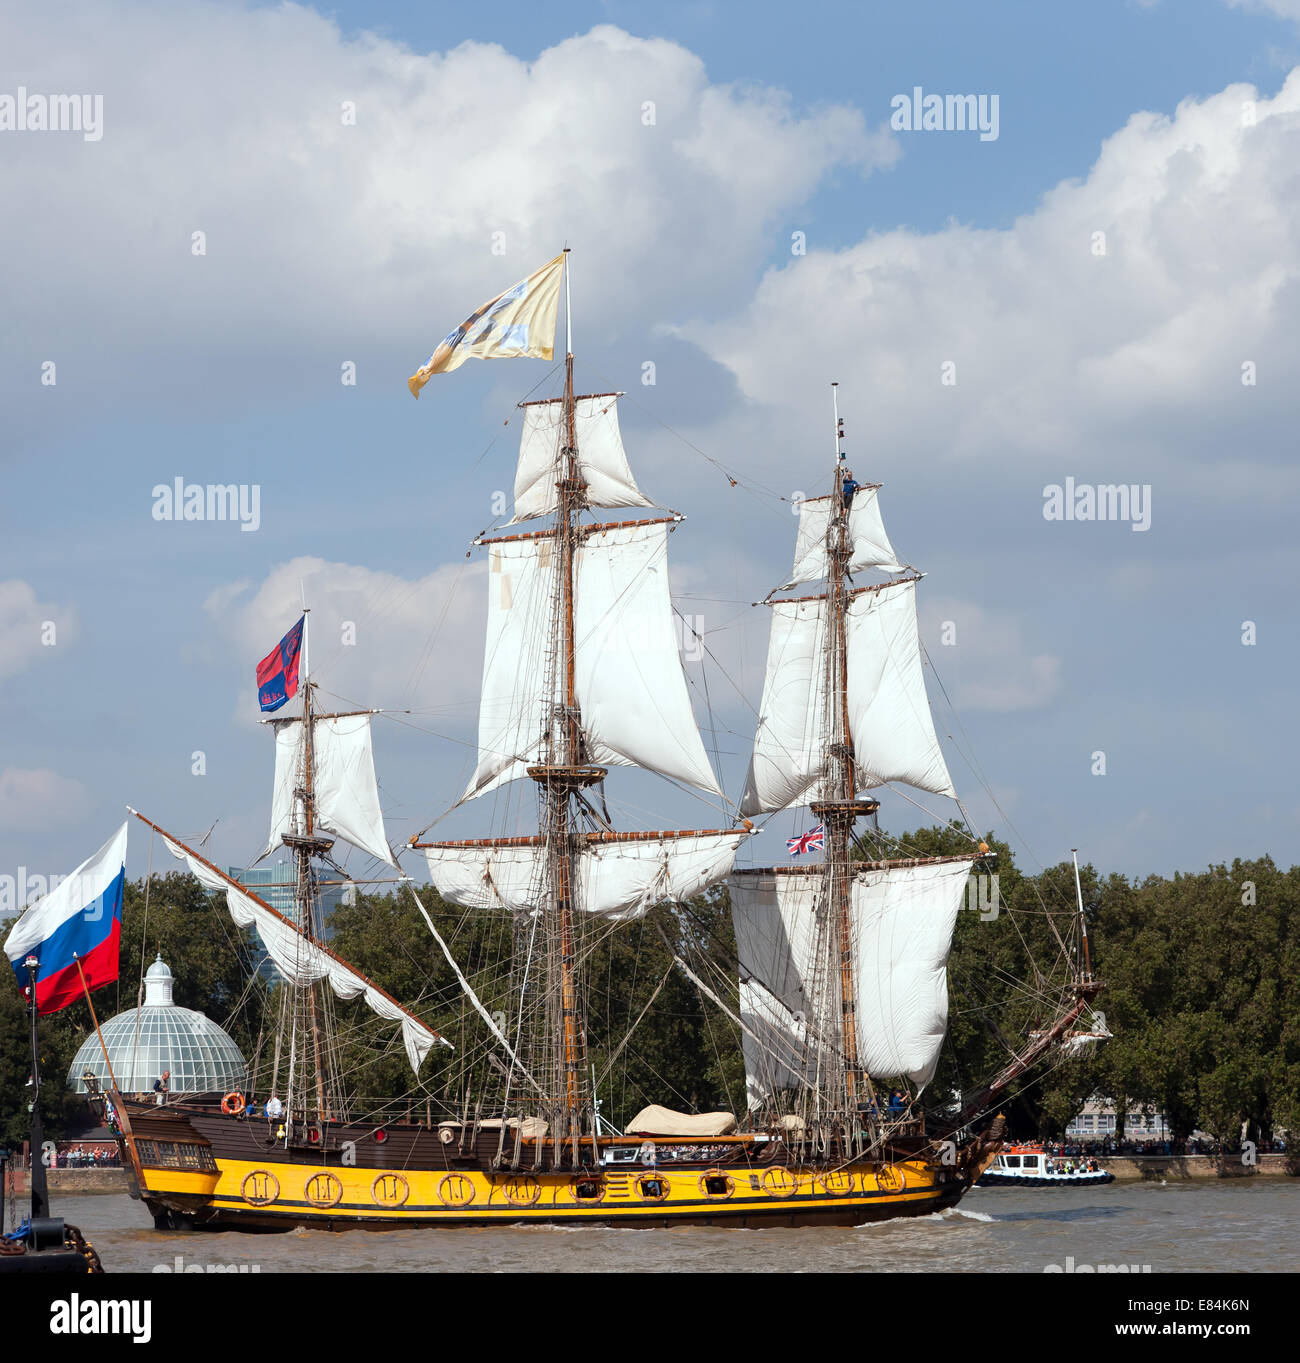 The Shtandart,a replica of a 1703 Russian navy flagship, taking part in the parade of Sale, during the Tall Ships - Stock Image